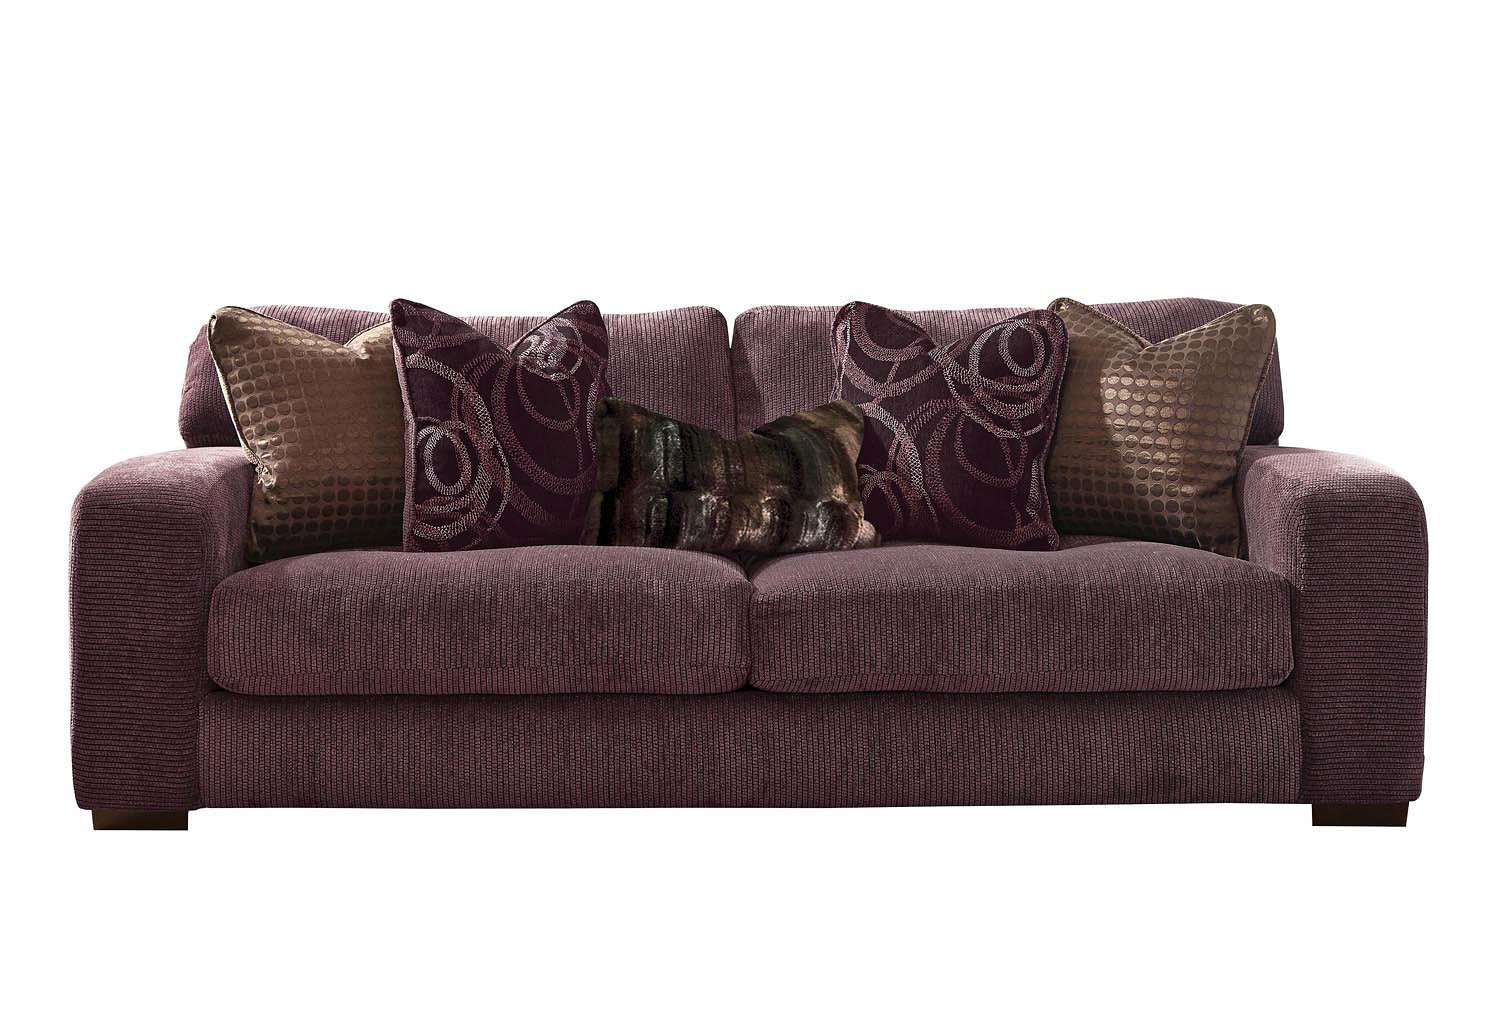 Charmant Serena Sofa (Plum) By Jackson Furniture